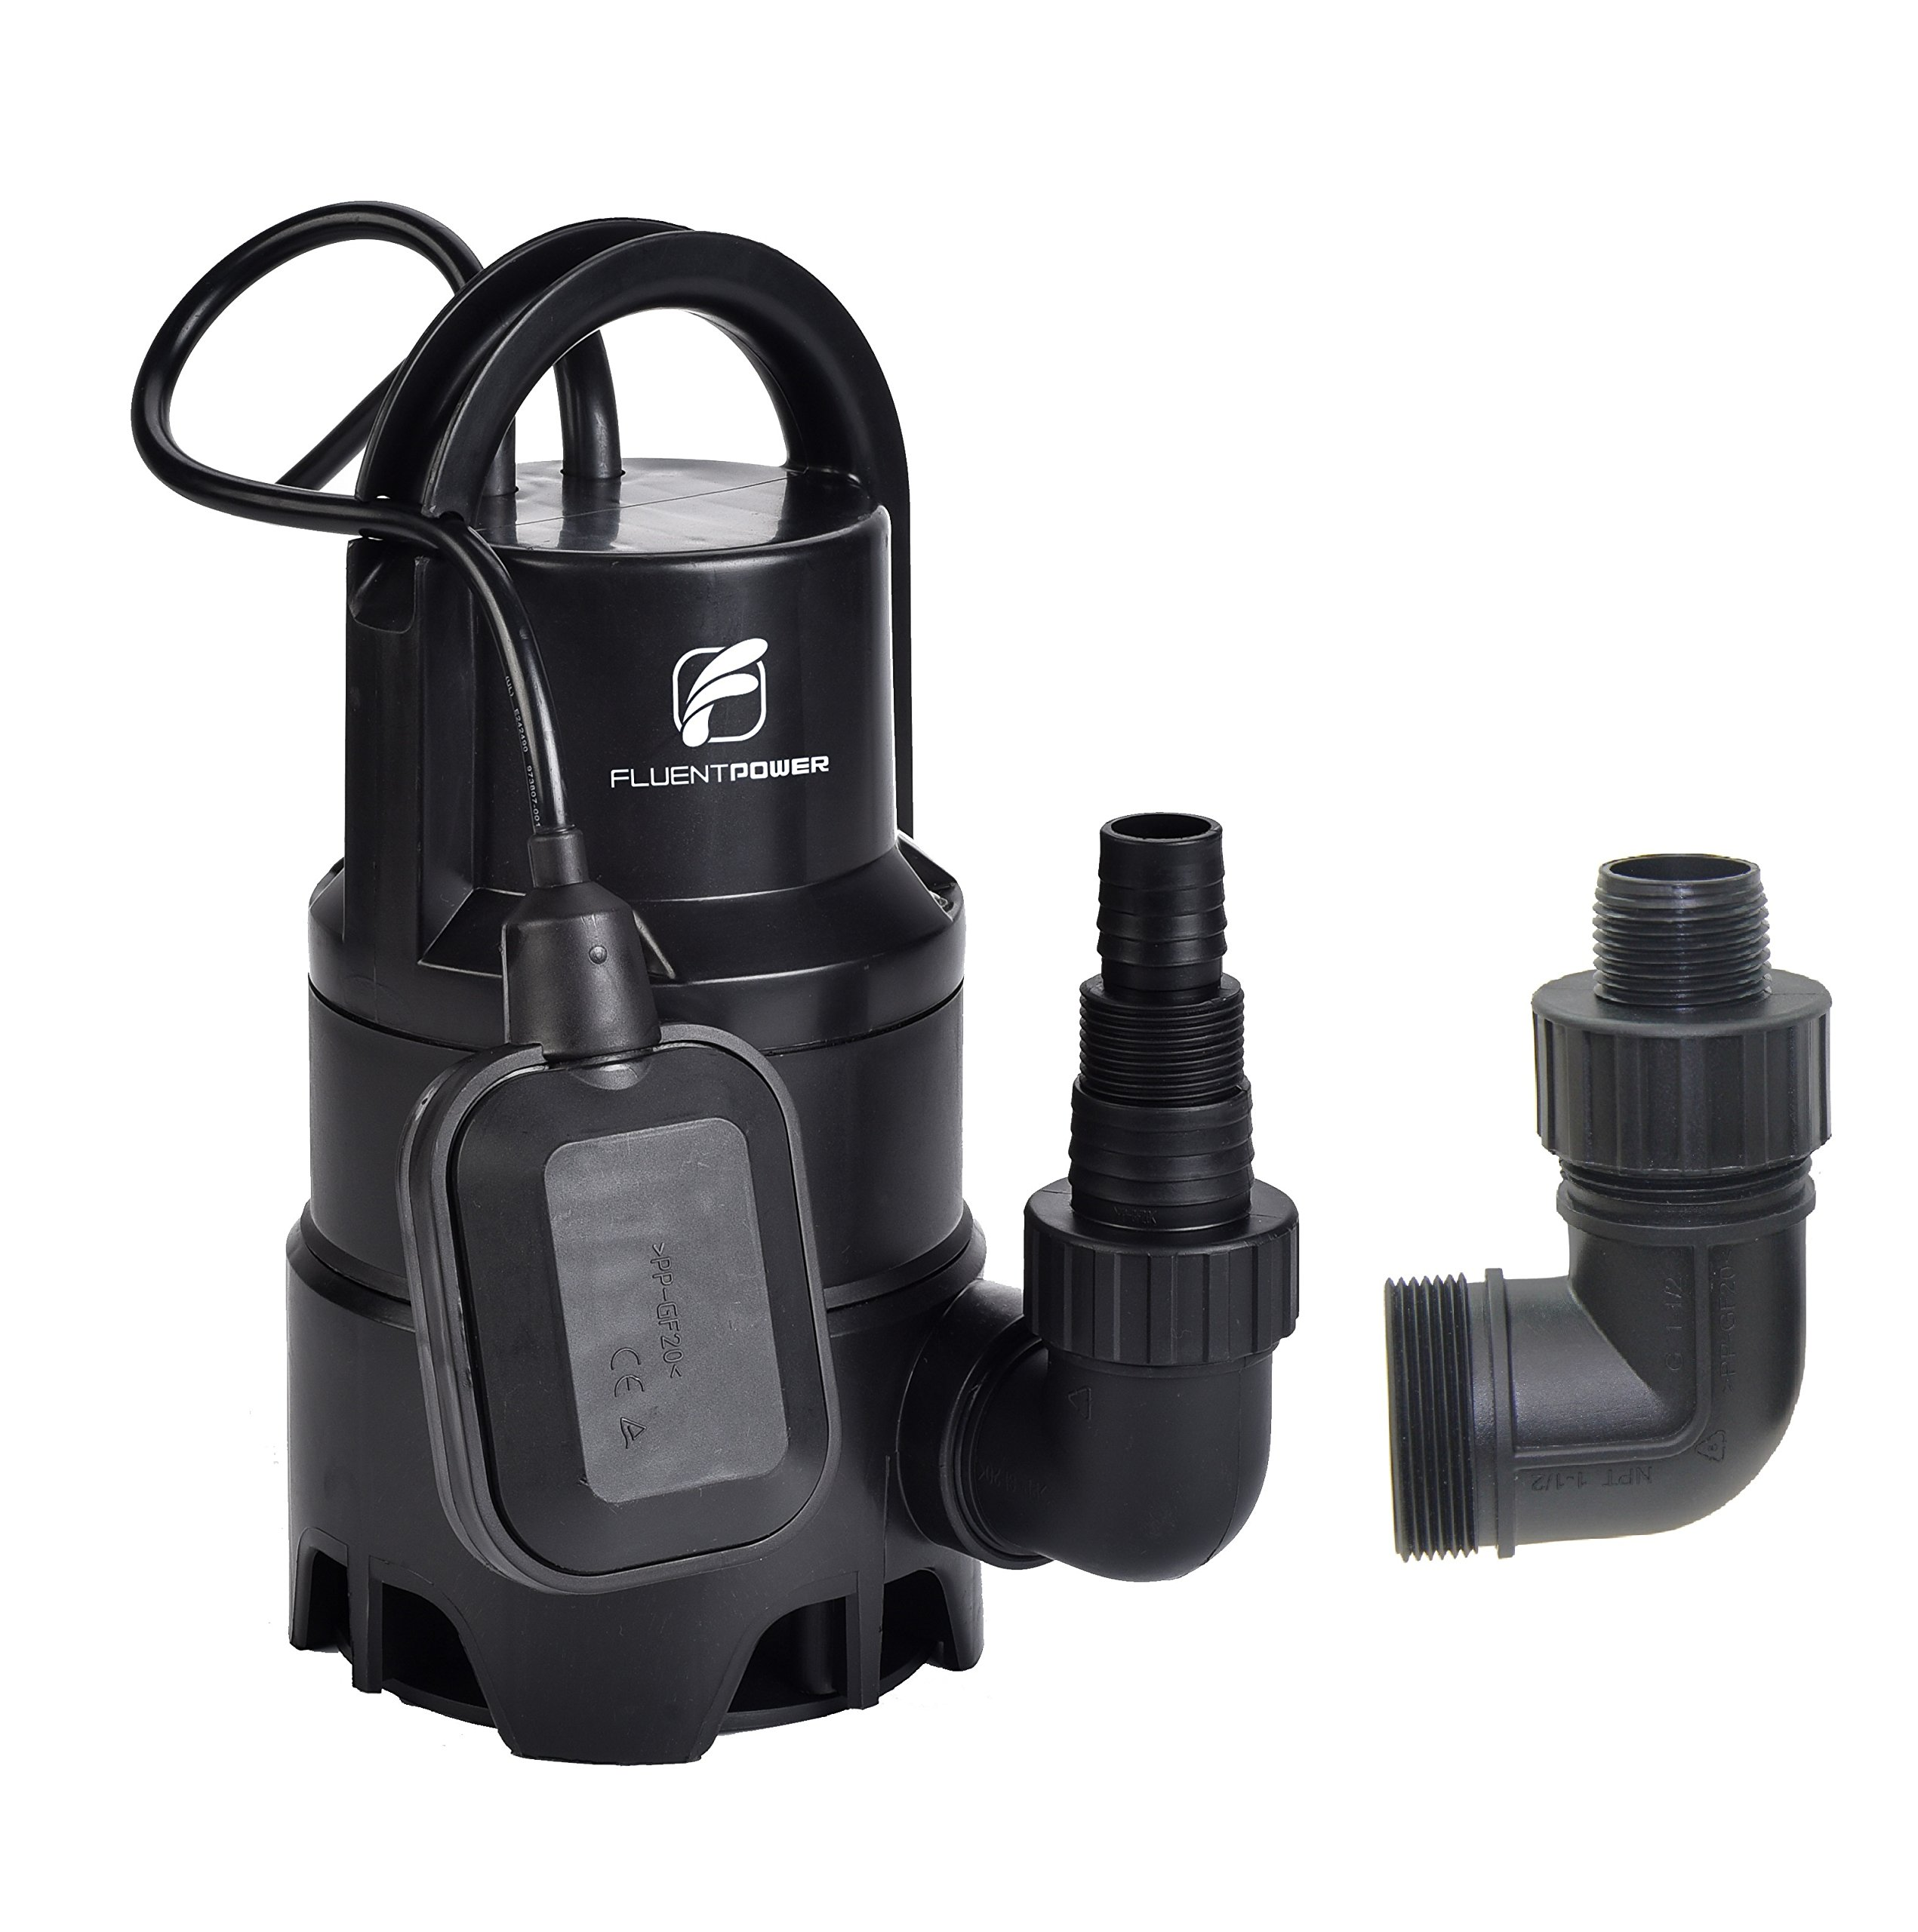 FLUENT POWER Submersible Pump - 110V/60Hz 1/3HP 2100 GPH Clean / Dirty Submersible Water Pump includes float switch for automatic operation with adaptable hose connections